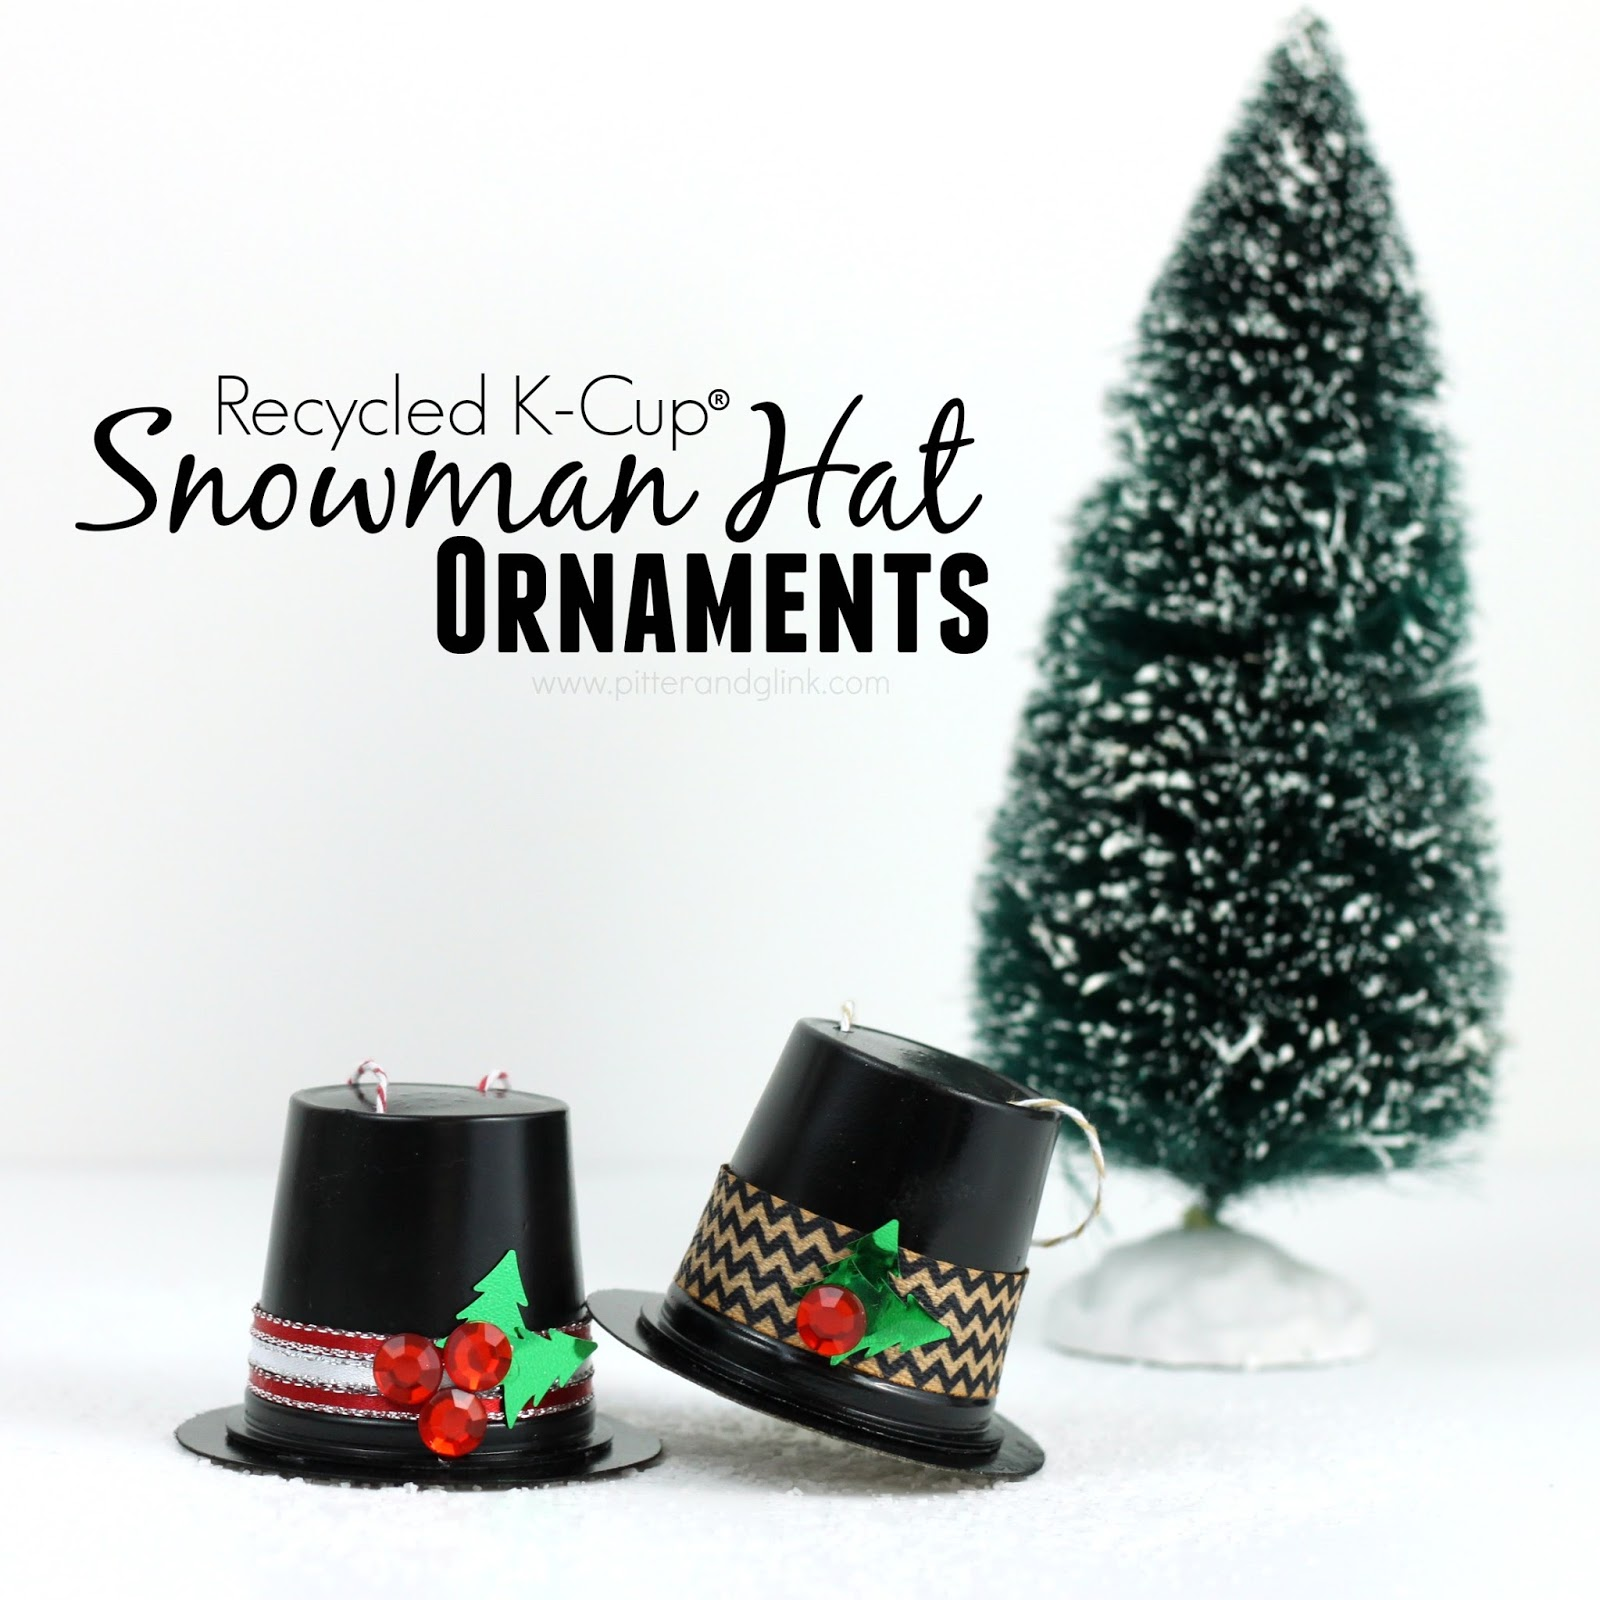 Recycled K-Cup Snowman Hat Ornaments pitterandglink.com